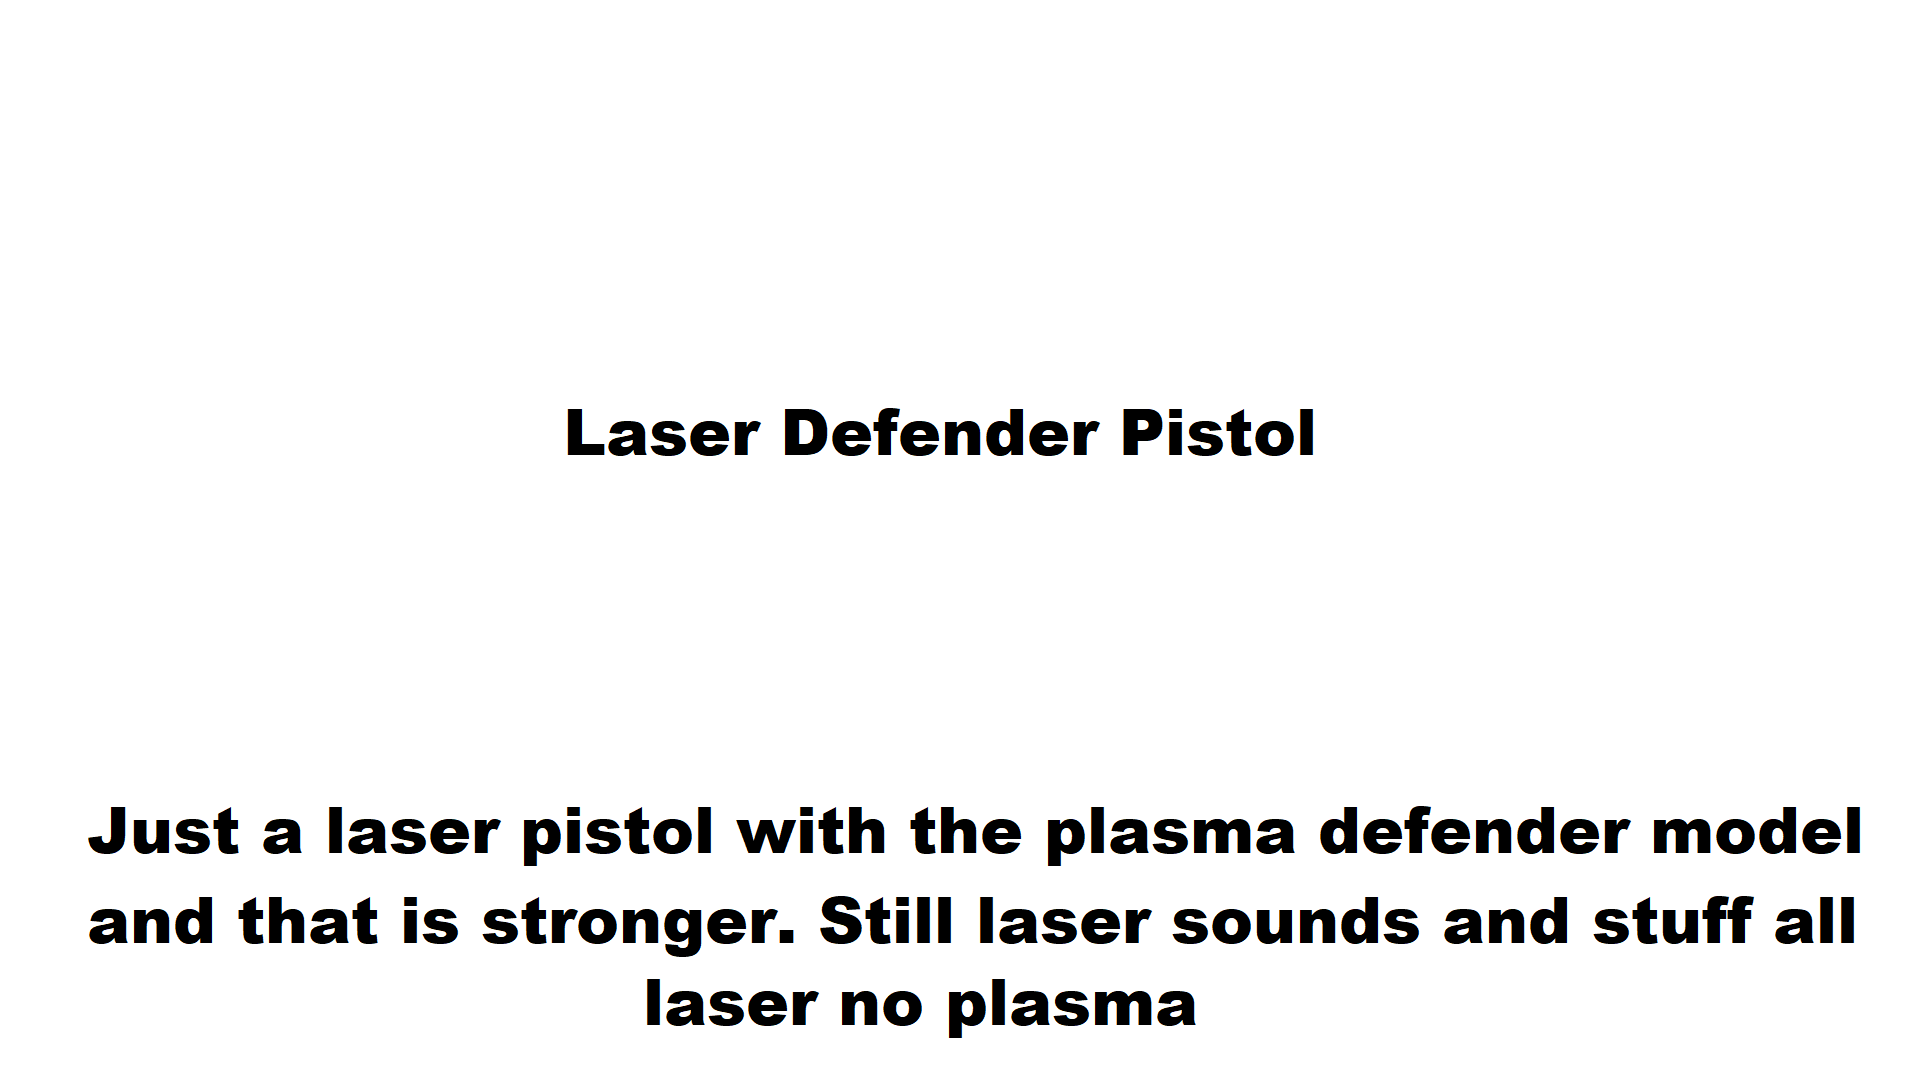 Laser Defender Pistol At Fallout New Vegas